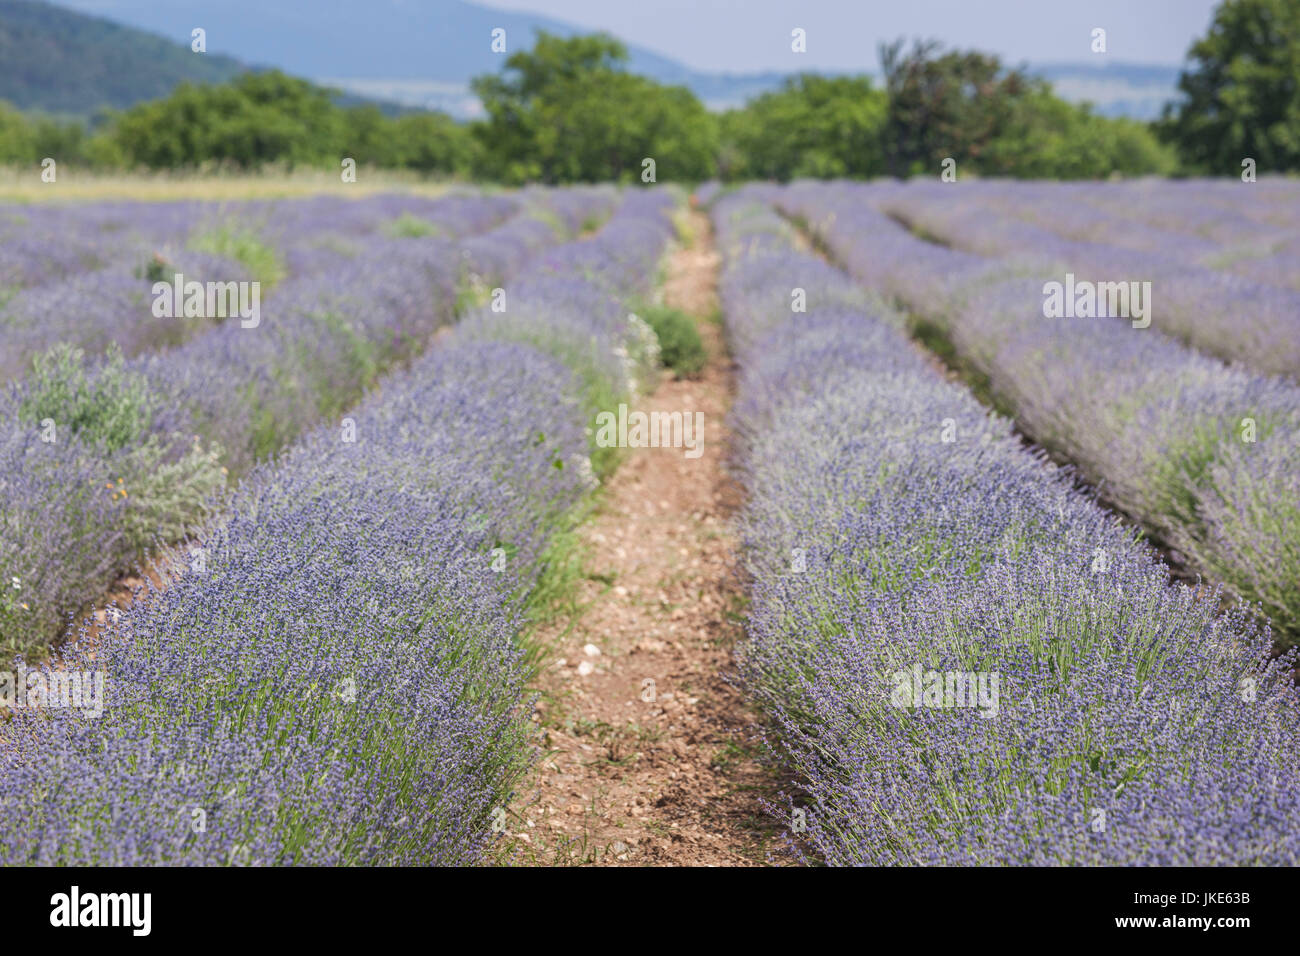 Bulgaria, Central Mountains, Kazanlak, lavender field - Stock Image